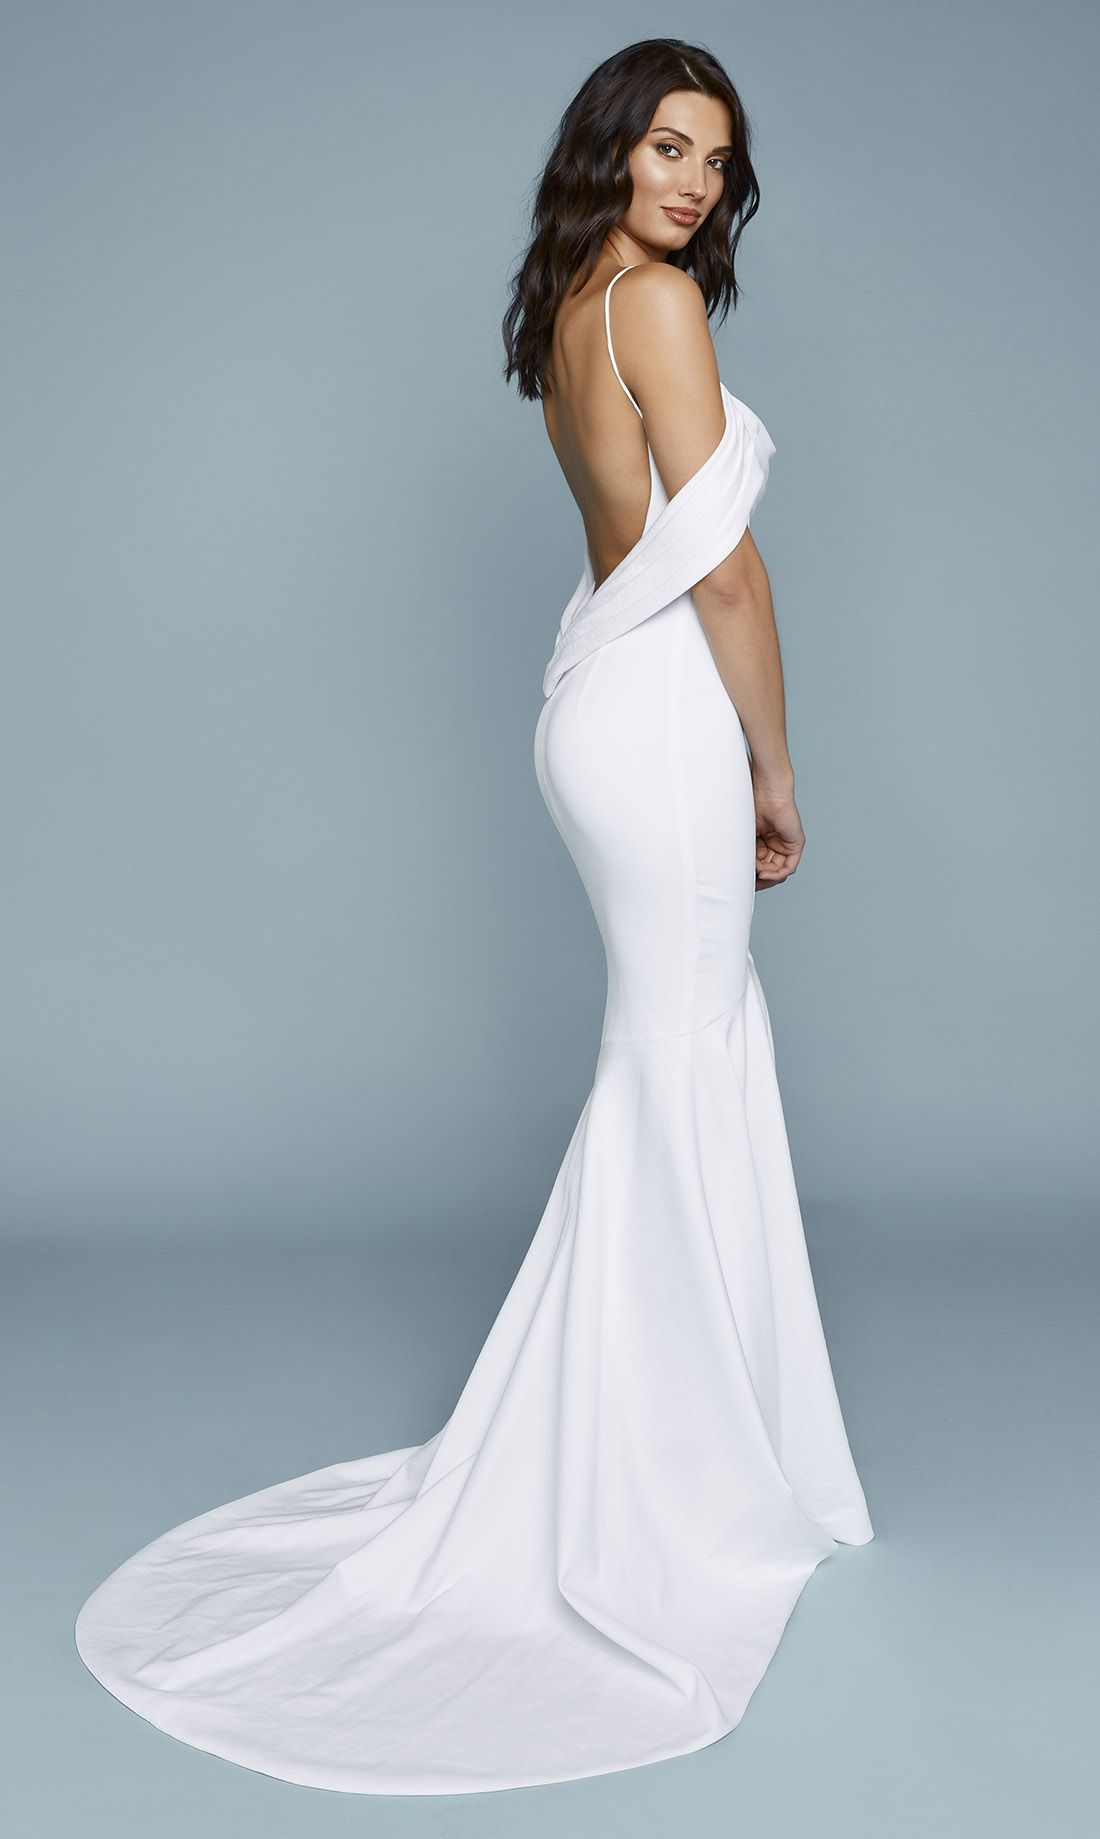 Marbella Gown | Gowns, Wedding dress and Weddings